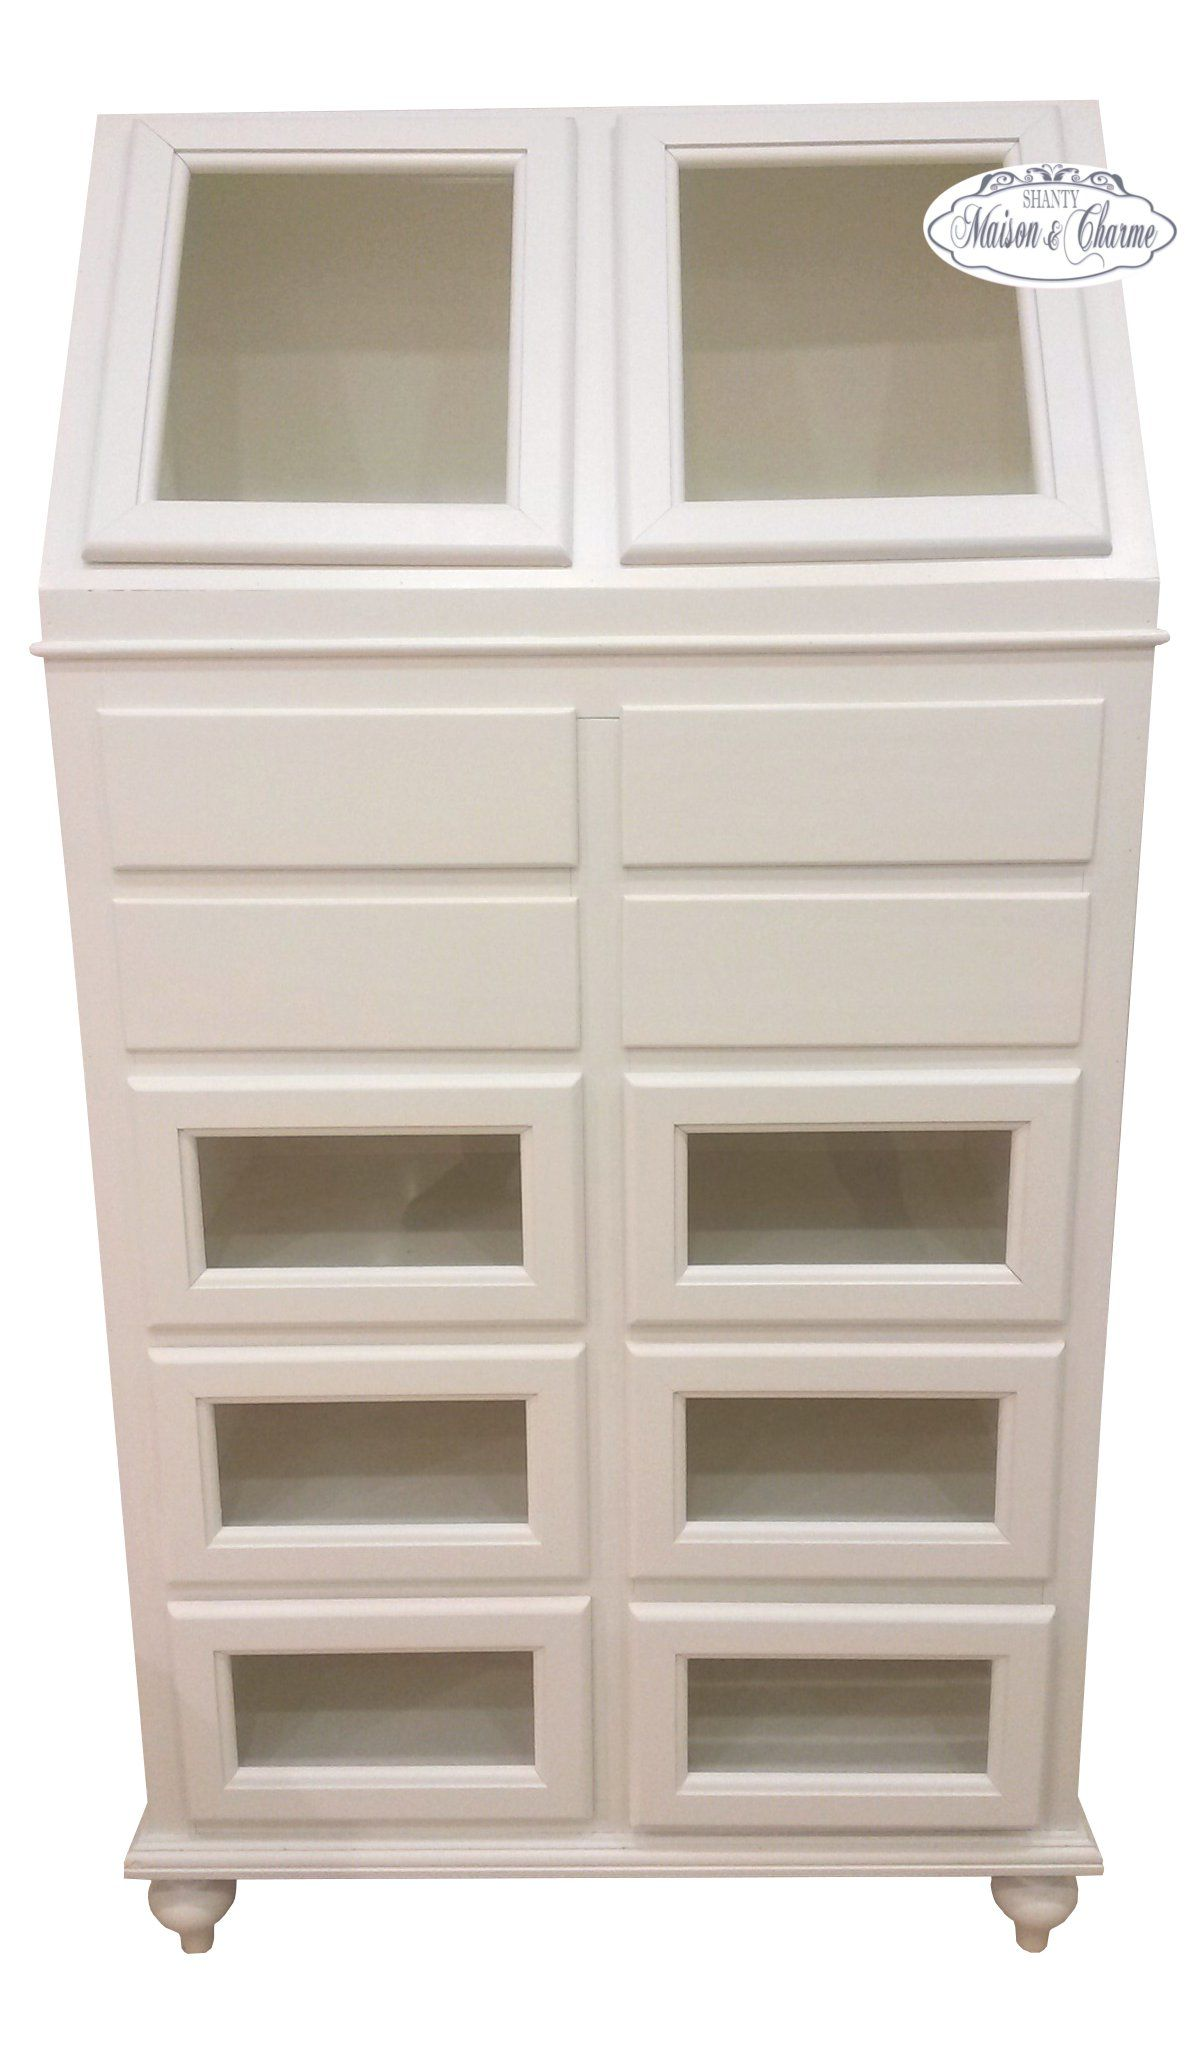 Dispensa julie shabby chic credenze buffet for Credenze shabby chic ikea